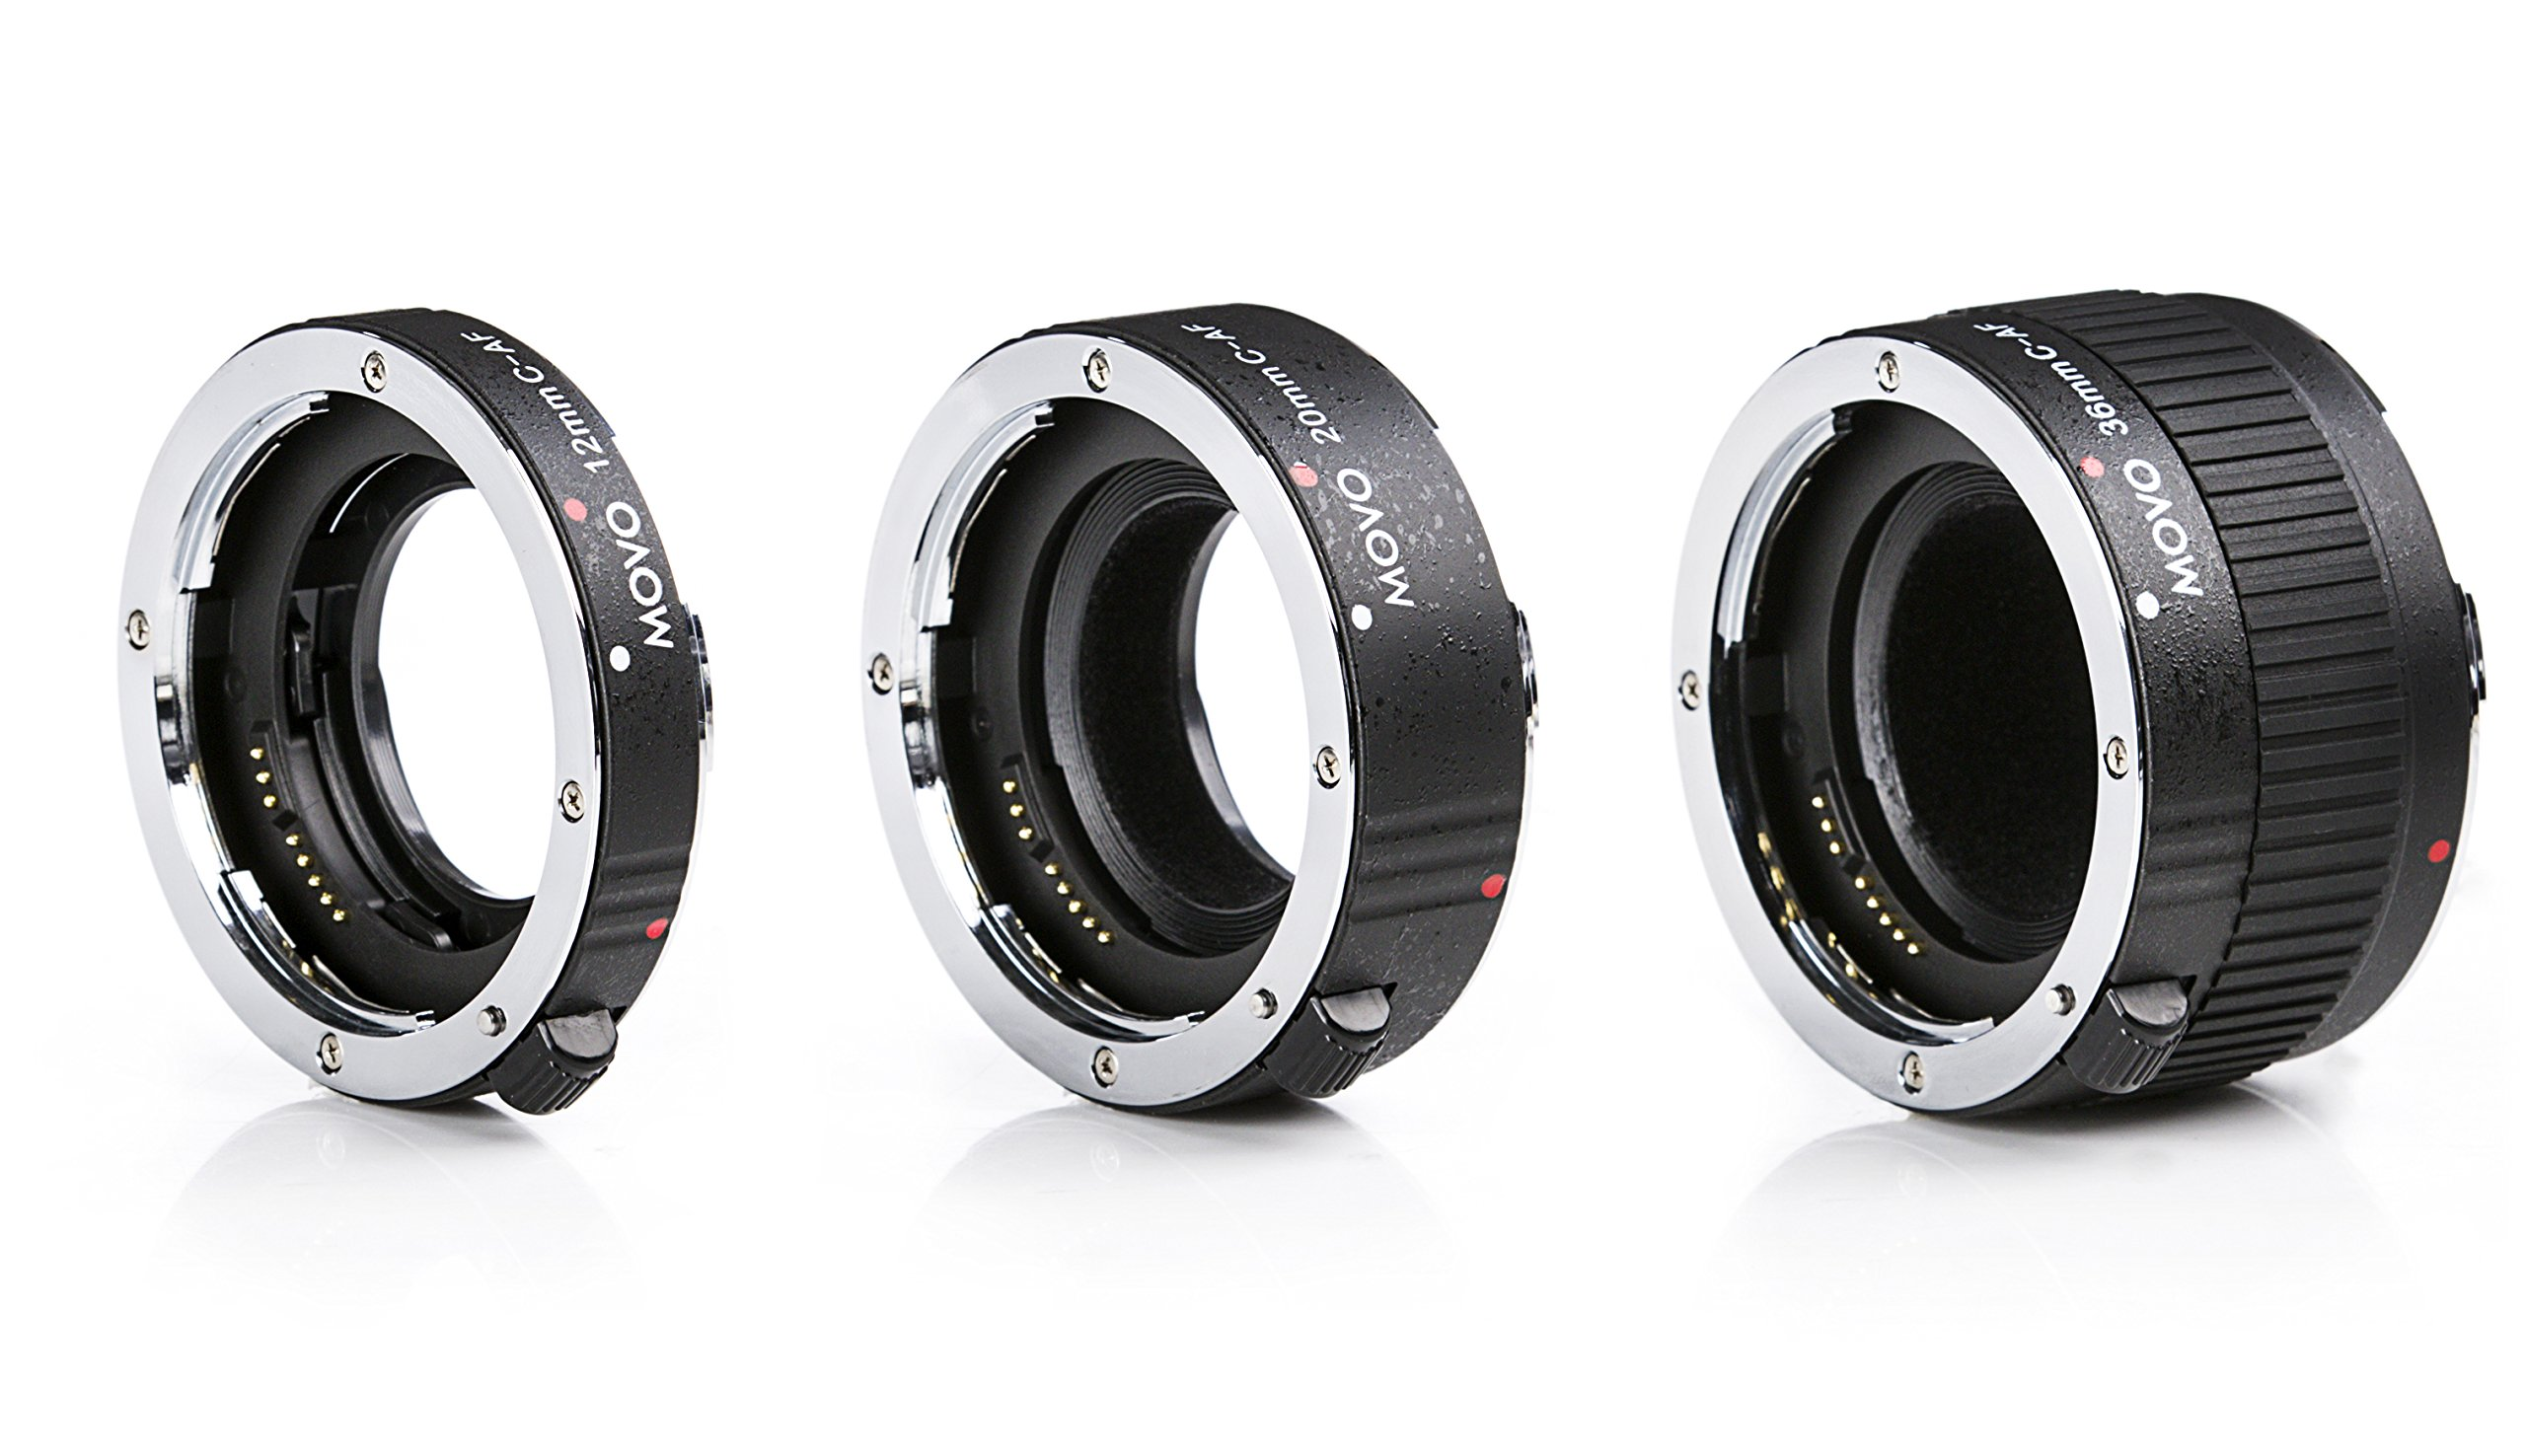 MOVO PRO CHROME 3-Piece AF Macro Extension Tube Set for Canon EOS DSLR Camera 12mm, 20mm, 36mm, Maintains Full Auto Focus Metering and Electronic Pass Thru Contact Easy On Off Auto Focus Lens Extender by Movo